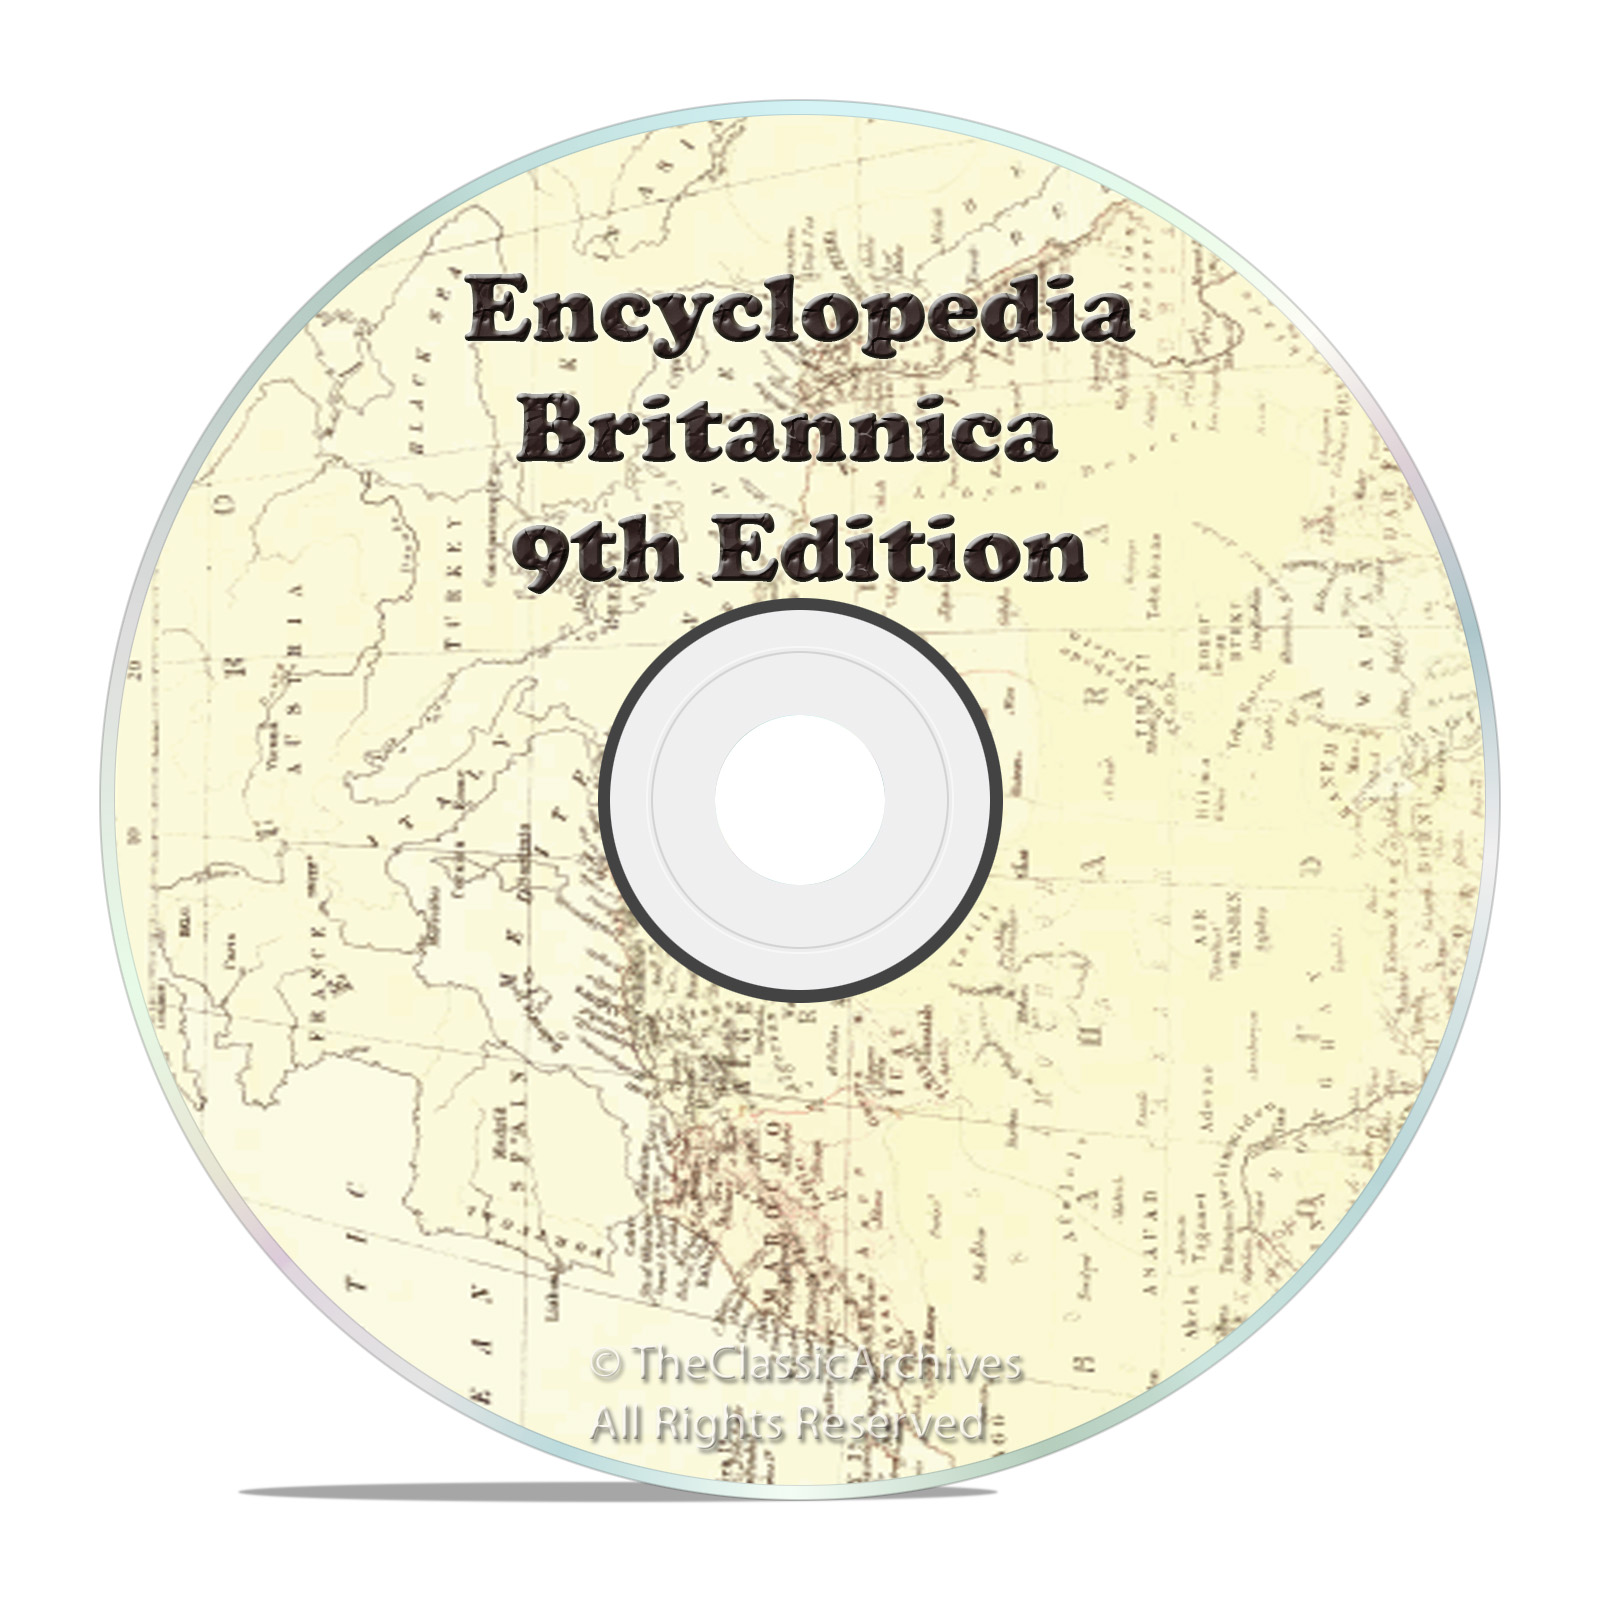 IMMEDIATE DOWNLOAD - 1875 9th Edition of Encyclopedia Britannica